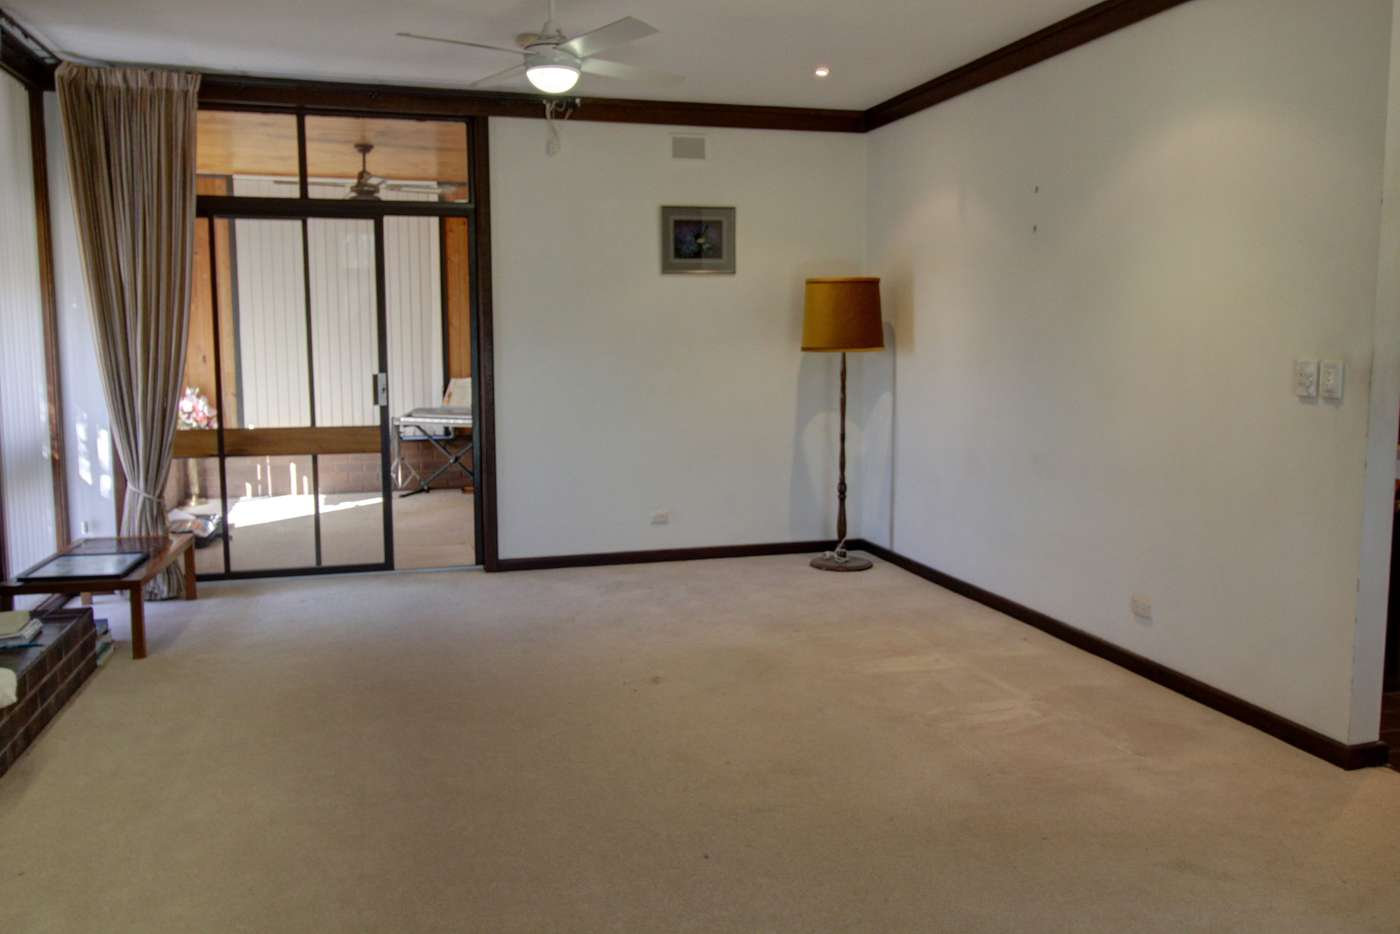 Sixth view of Homely house listing, 15 Fairway Avenue, Barmera SA 5345